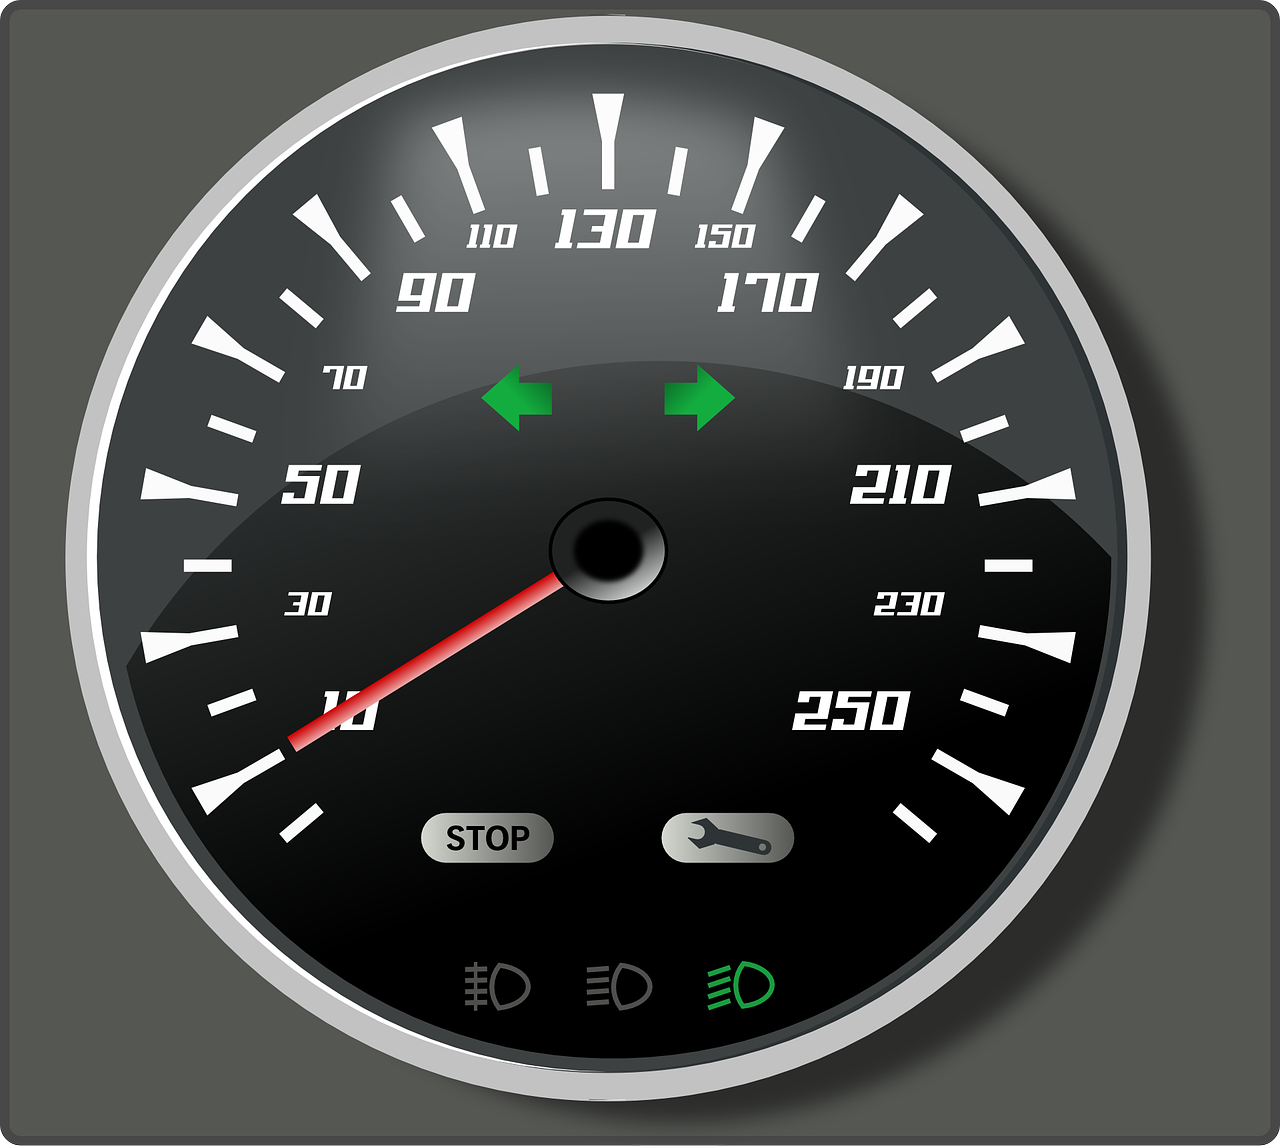 tachometer,gauge,hour,kilometers,miles,speed,speedometer,velocity,speedo,free vector graphics,free pictures, free photos, free images, royalty free, free illustrations, public domain